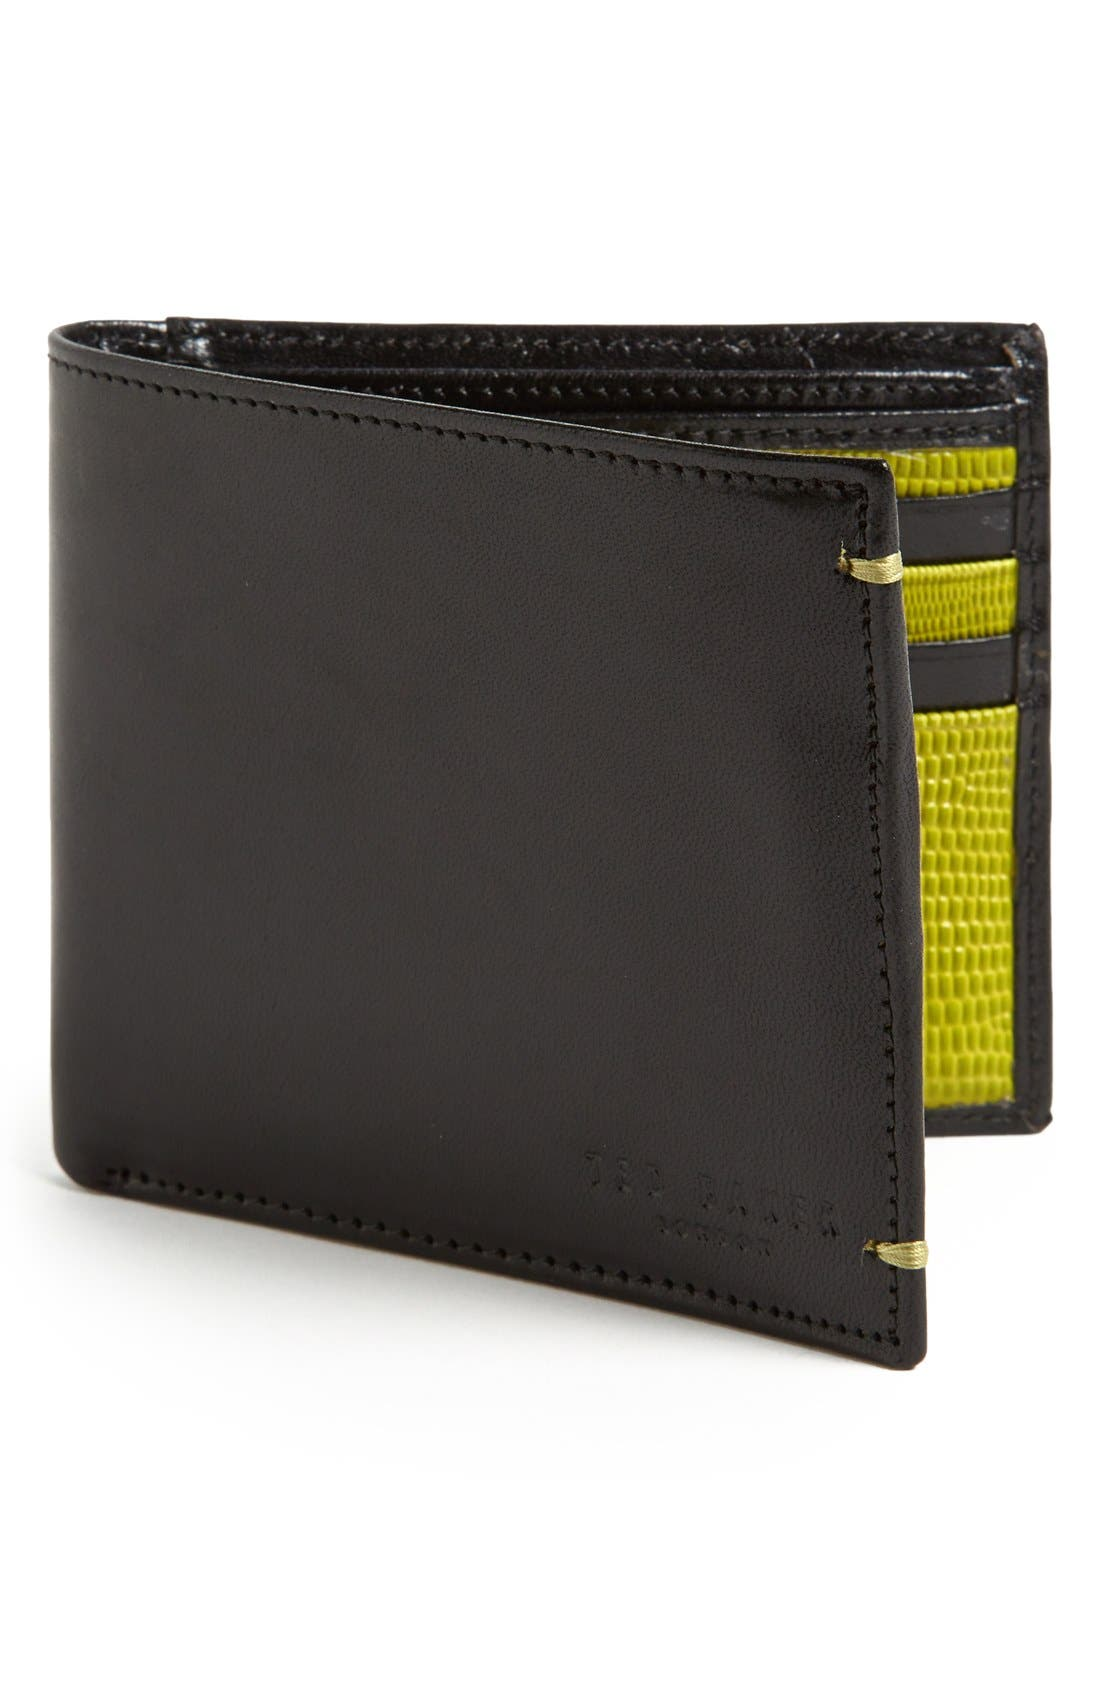 Main Image - Ted Baker London Leather Bifold Wallet